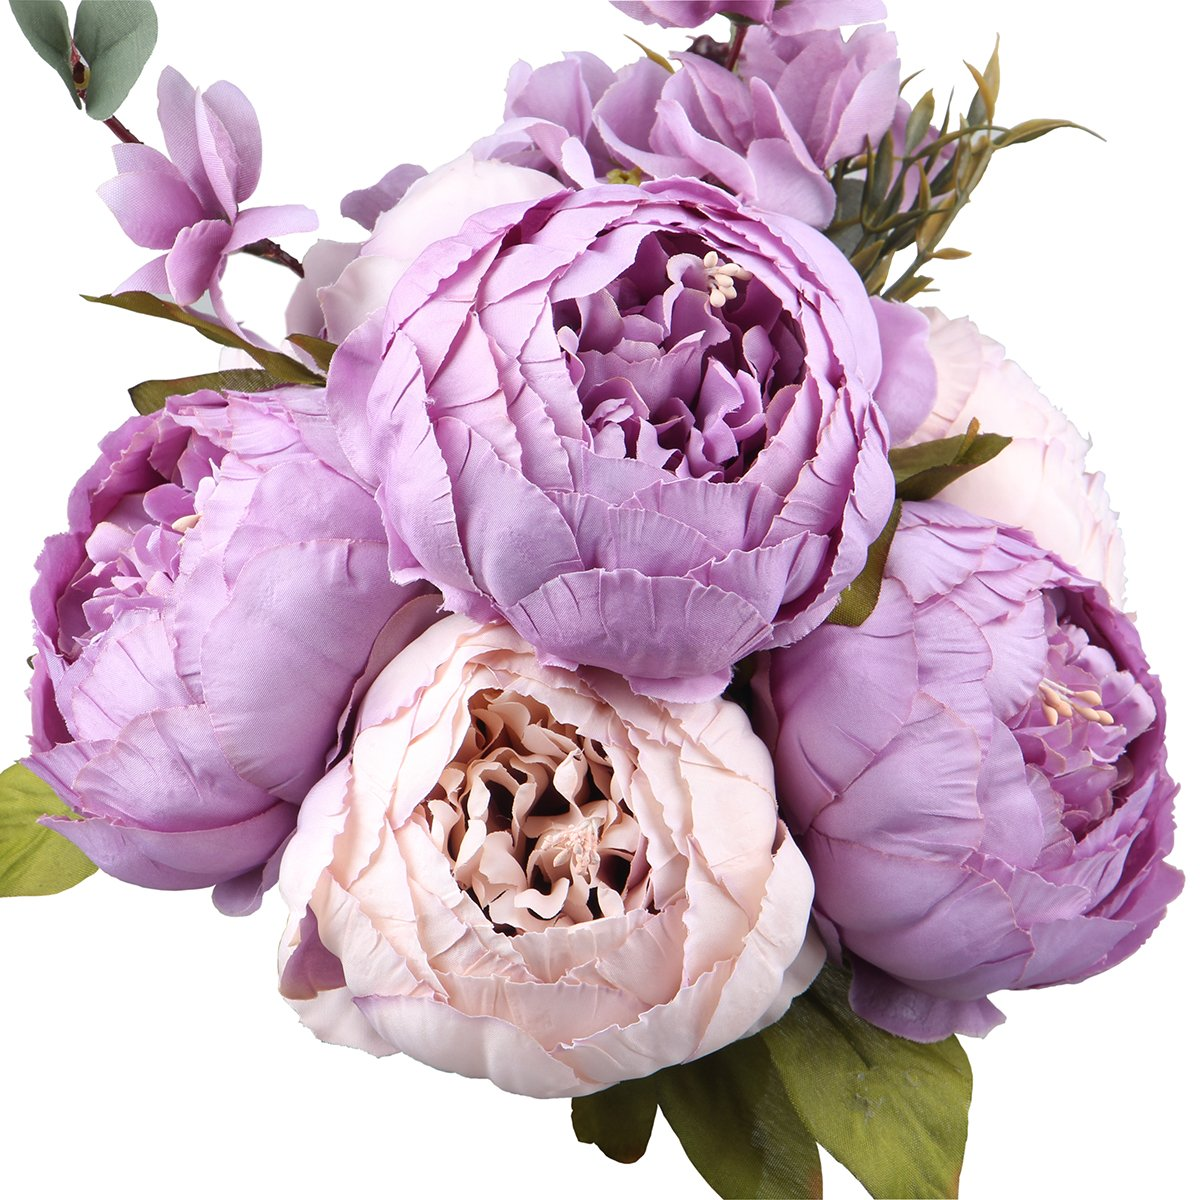 Leagel fake flowers vintage artificial peony silk flowers bouquet leagel fake flowers vintage artificial peony silk flowers bouquet wedding home decoration pack of 1 new mightylinksfo